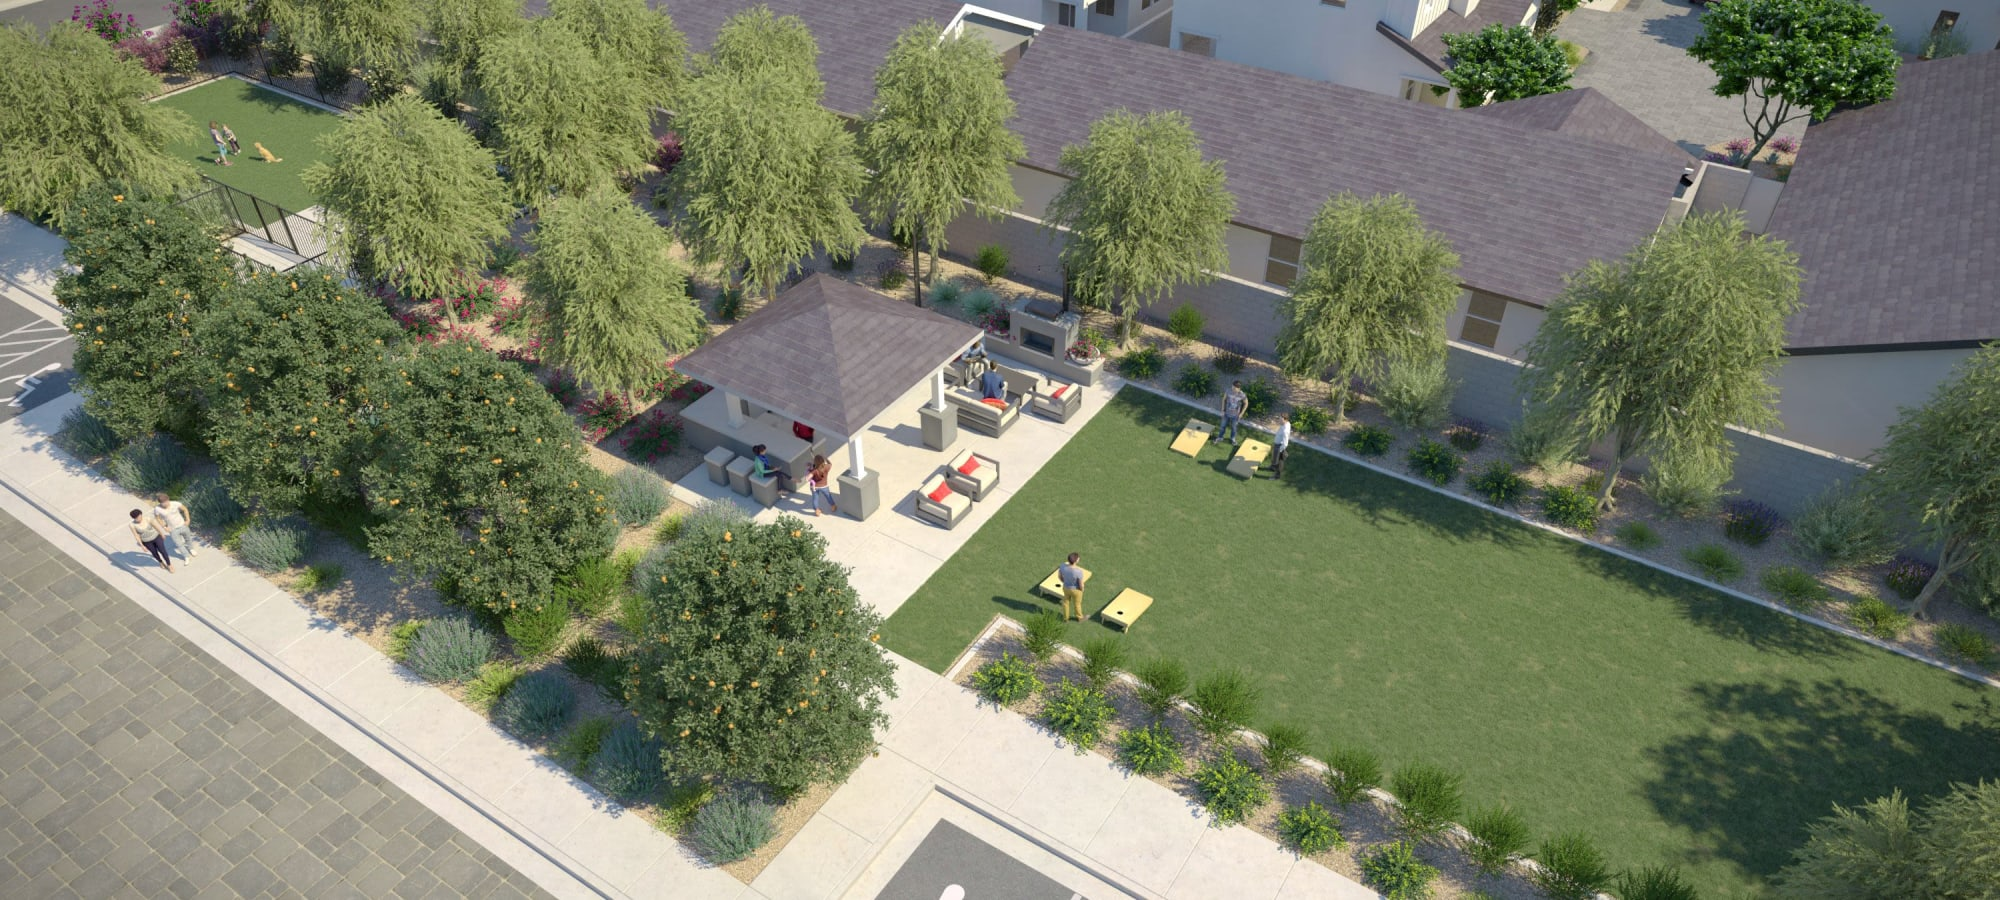 Resident amenities and dog park rendering at Cyrene at South Mountain in Phoenix, Arizona